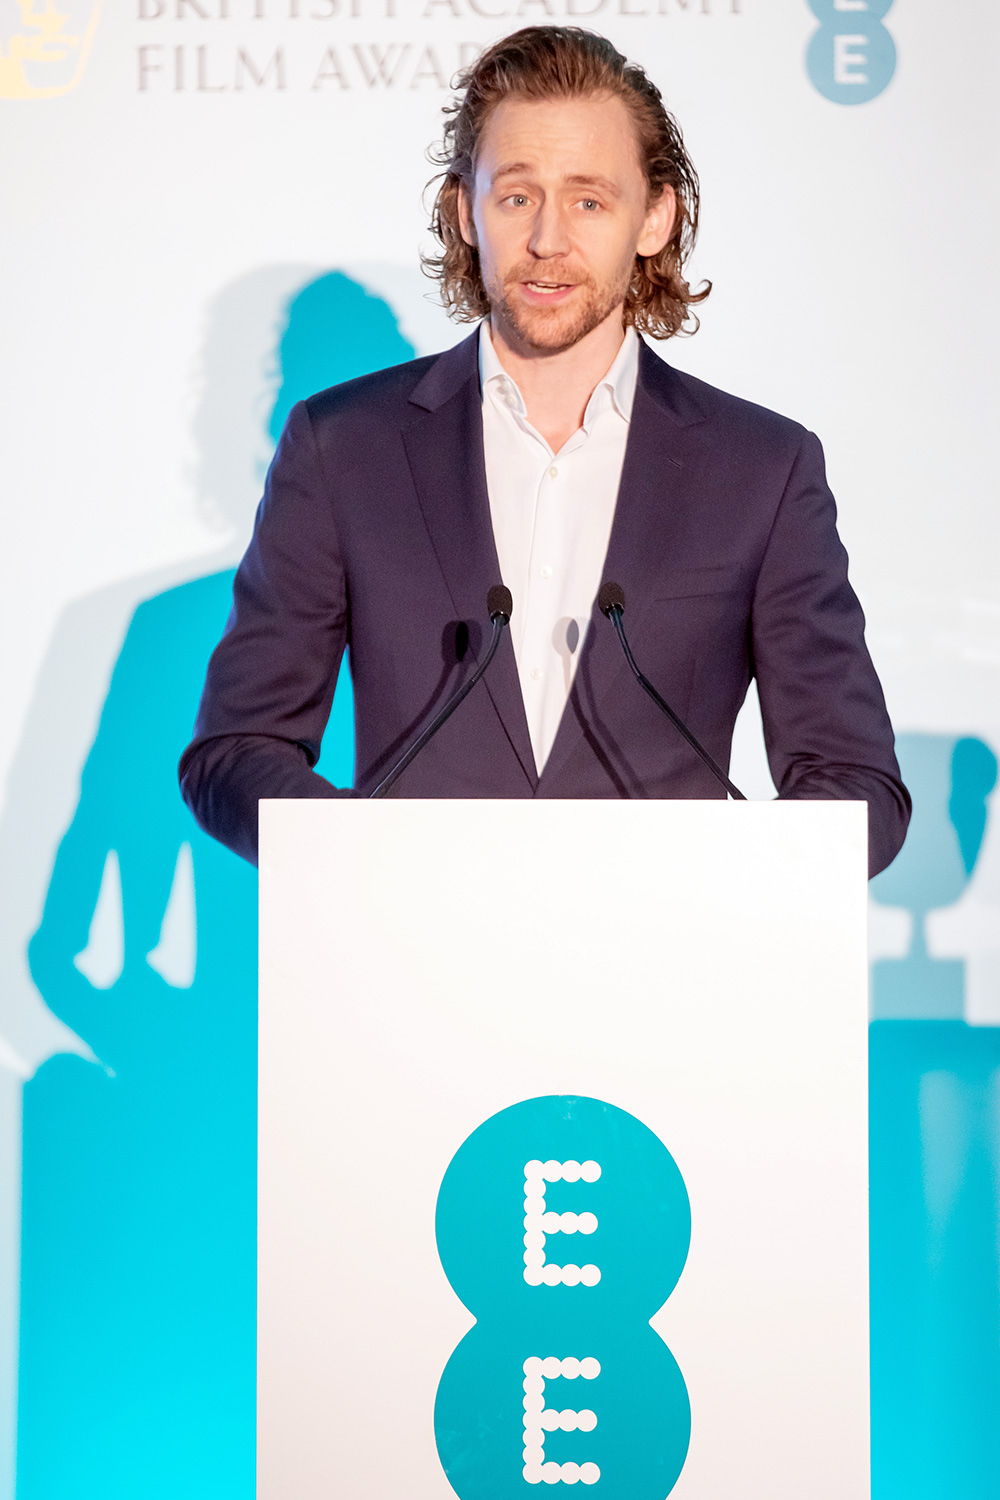 Tom Hiddleston announces the five nominees for the EE Rising Star Award ahead of the 2020 EE British Academy Film Awards: Awkwafina, Jack Lowden, Kaitlyn Dever, Kelvin Harrison Jr and Micheal Ward. Voting is now open at ee.co.uk/BAFTA BAFTA EE Rising Star Nominee Announcement photocall, The Savoy Hotel, London, UK - 06 Jan 2020